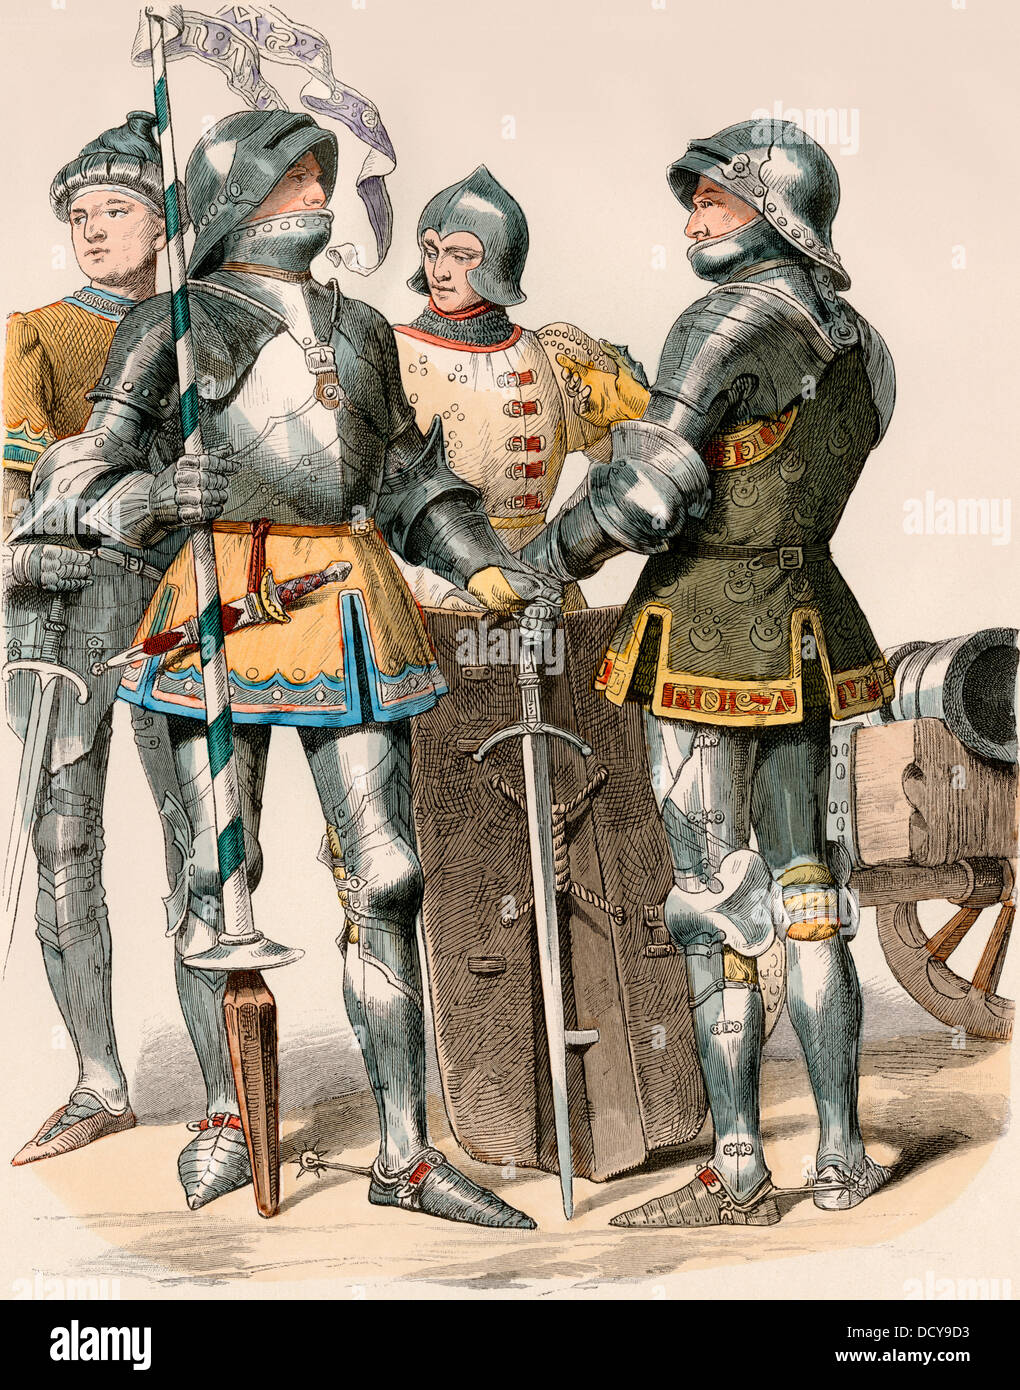 Burgundian knights in plate armor, 1470. Hand-colored print